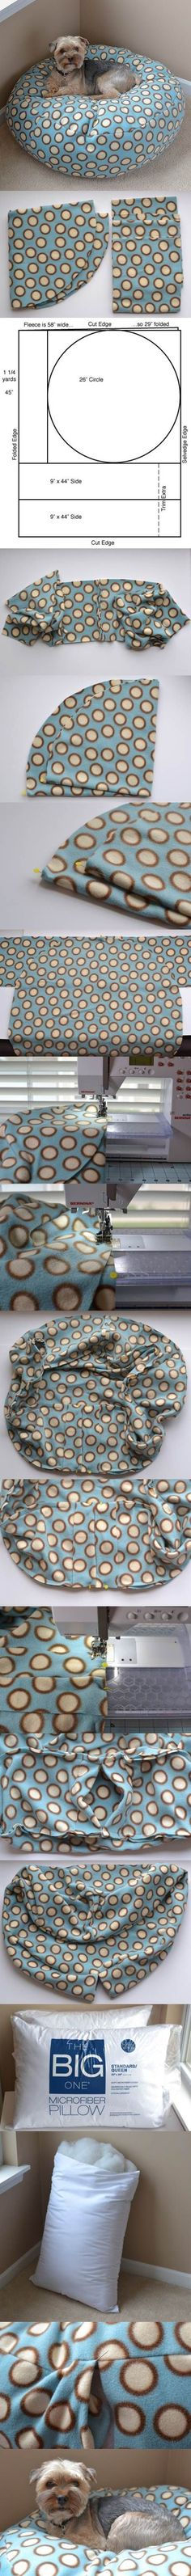 DIY Fleece Dog Bed 2